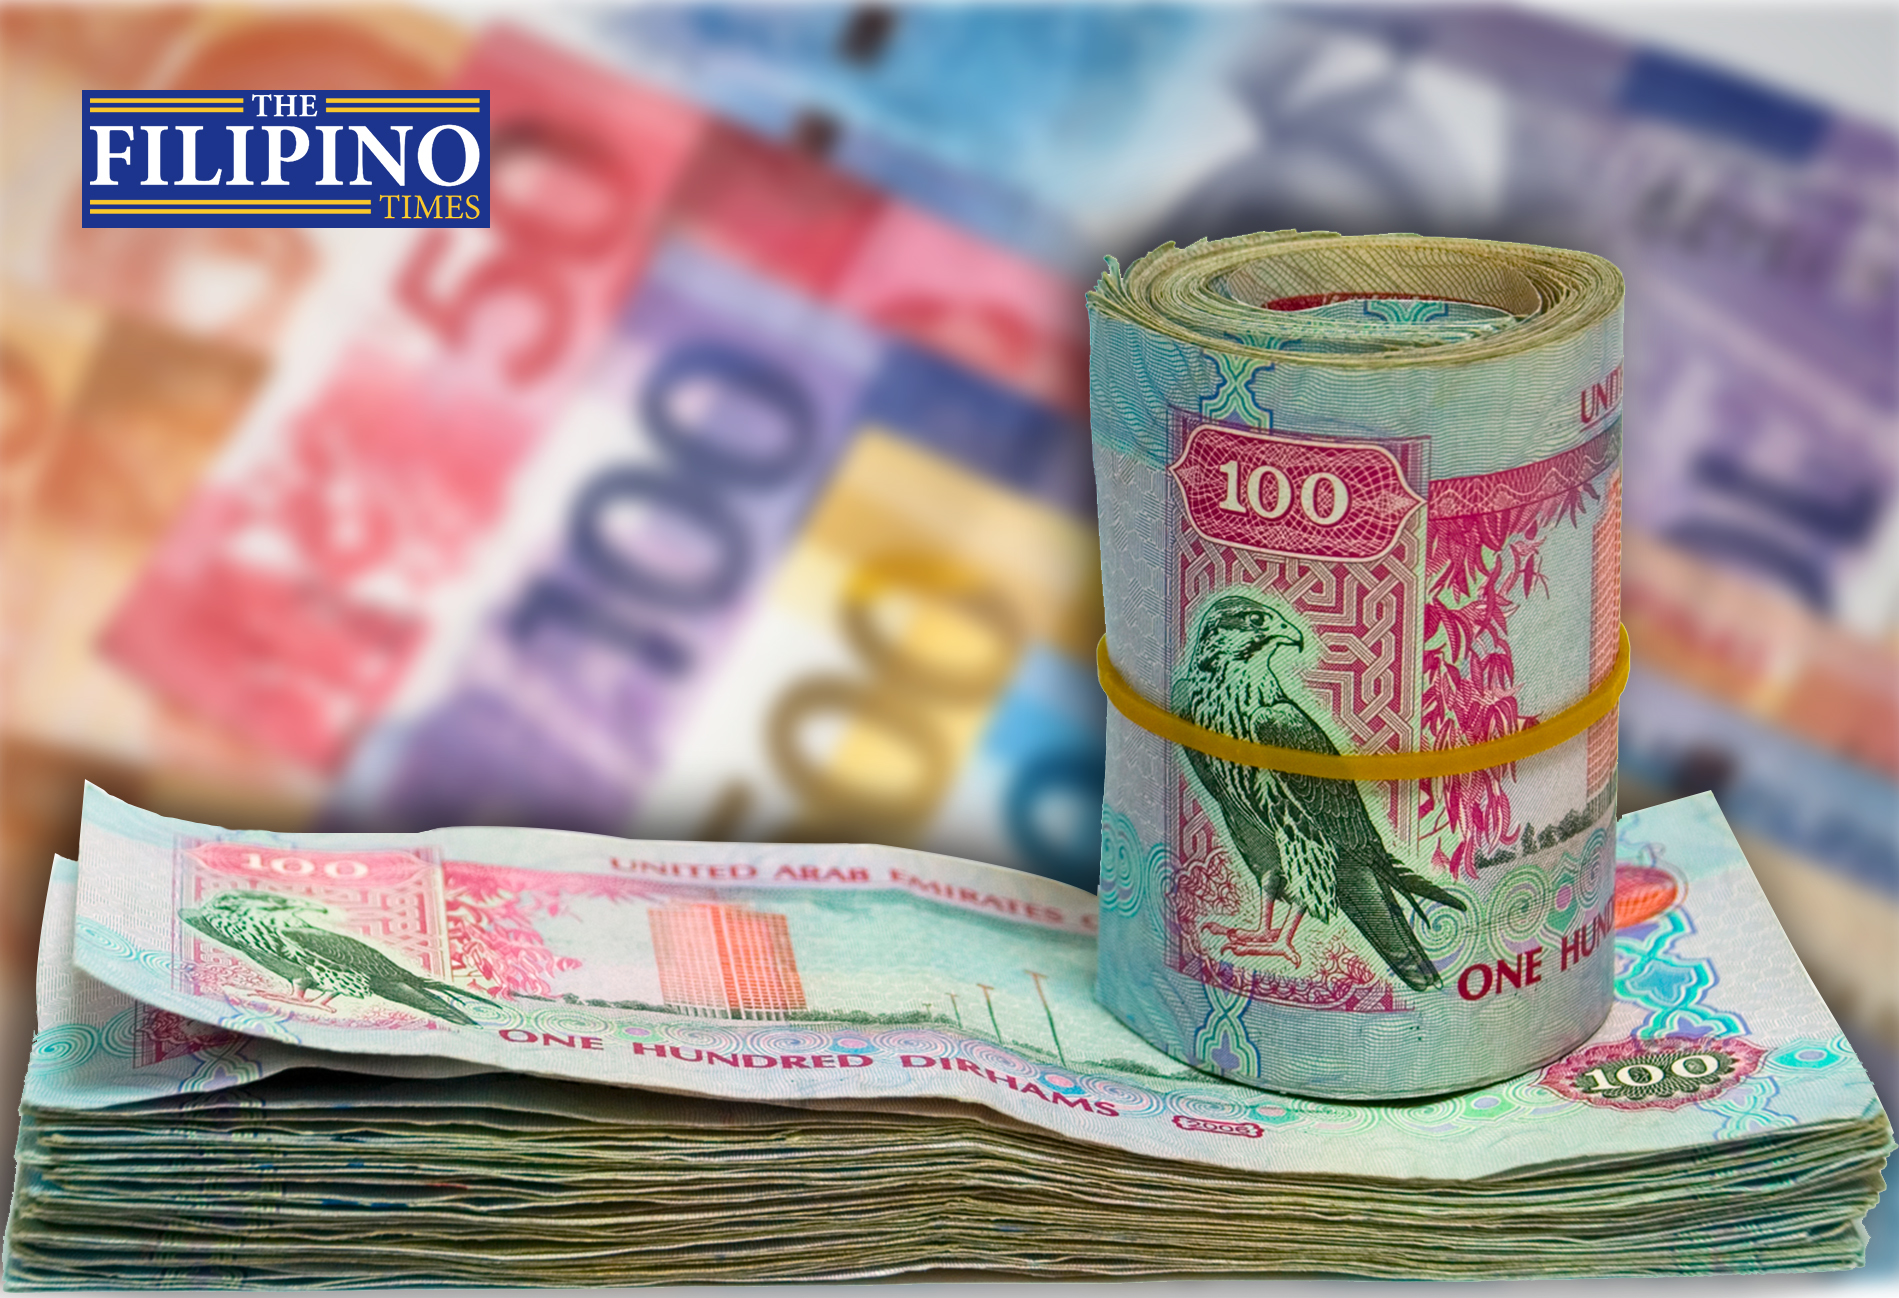 Things OFW must consider before remitting money